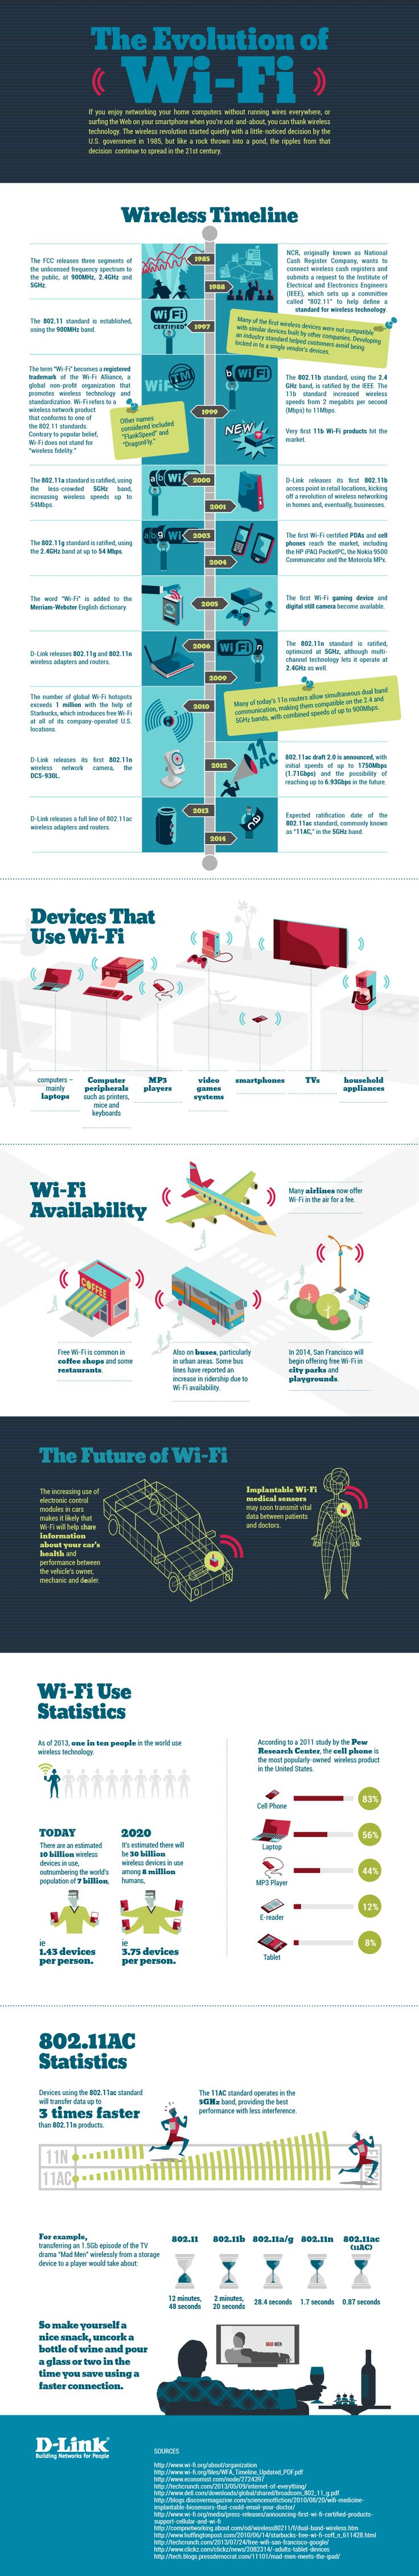 You use it nearly every day on your notebook Mac, PC or smartphone but have you ever really thought about what Wi-Fi is and how it got started? Follow